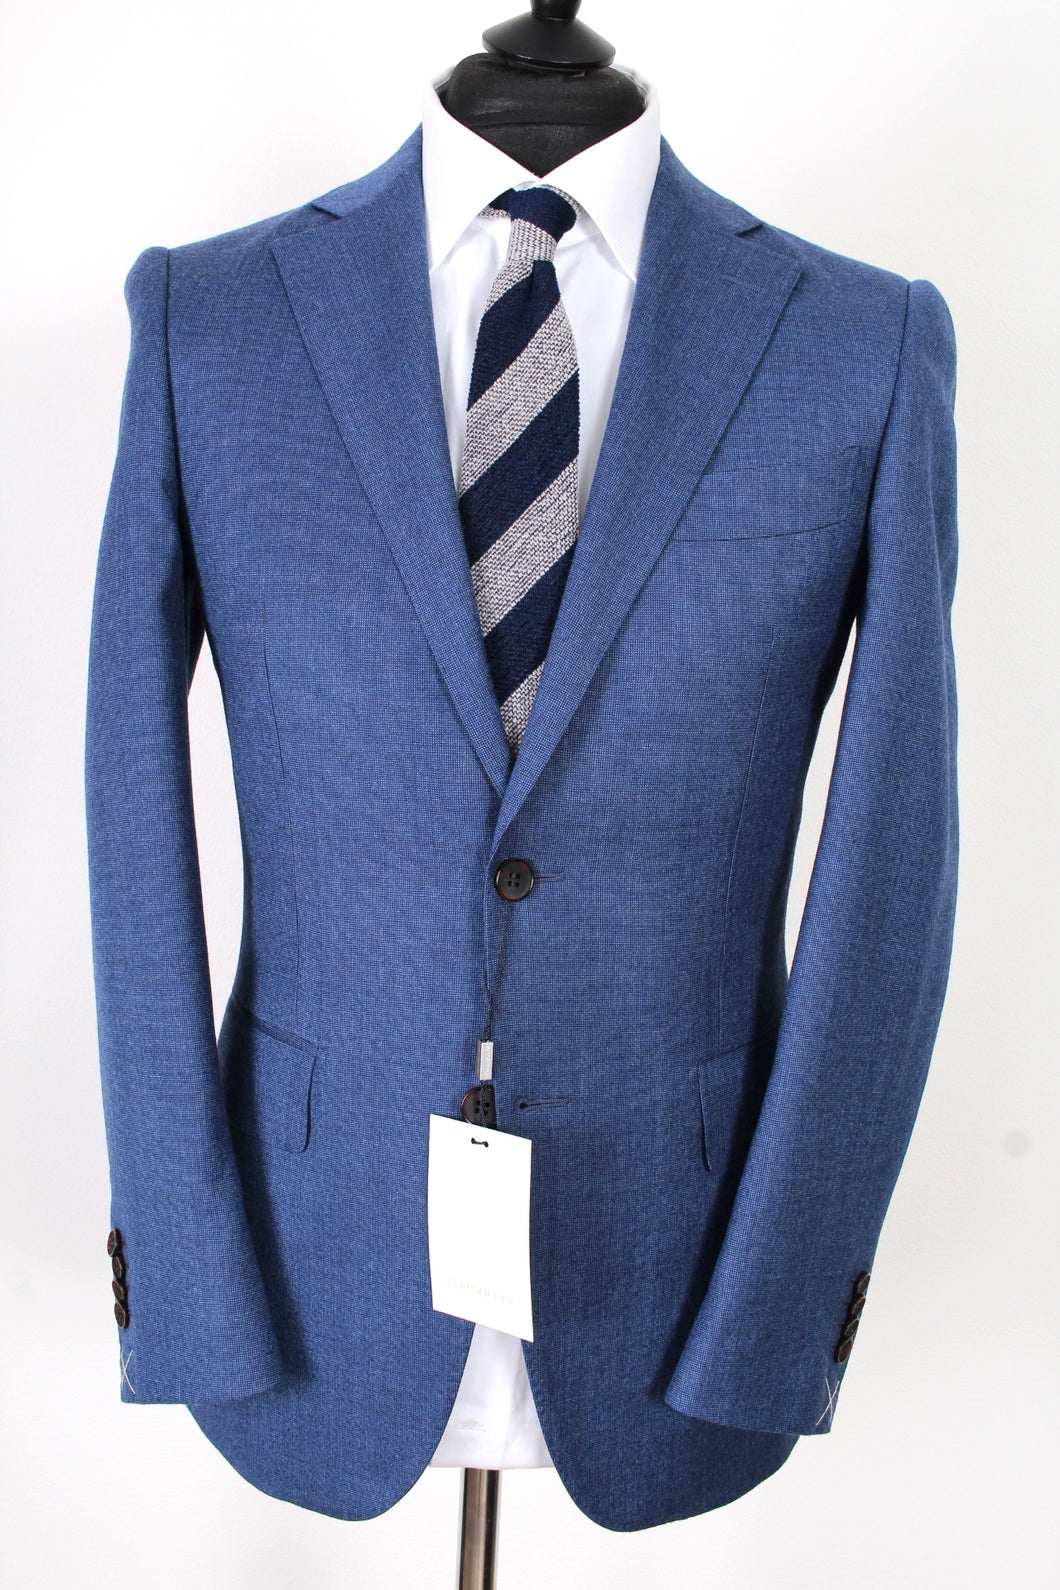 New Suitsupply Lazio  Blue Plain 100% Wool Suit - Size 36R, 38R, 40R and 44R (Low Price)